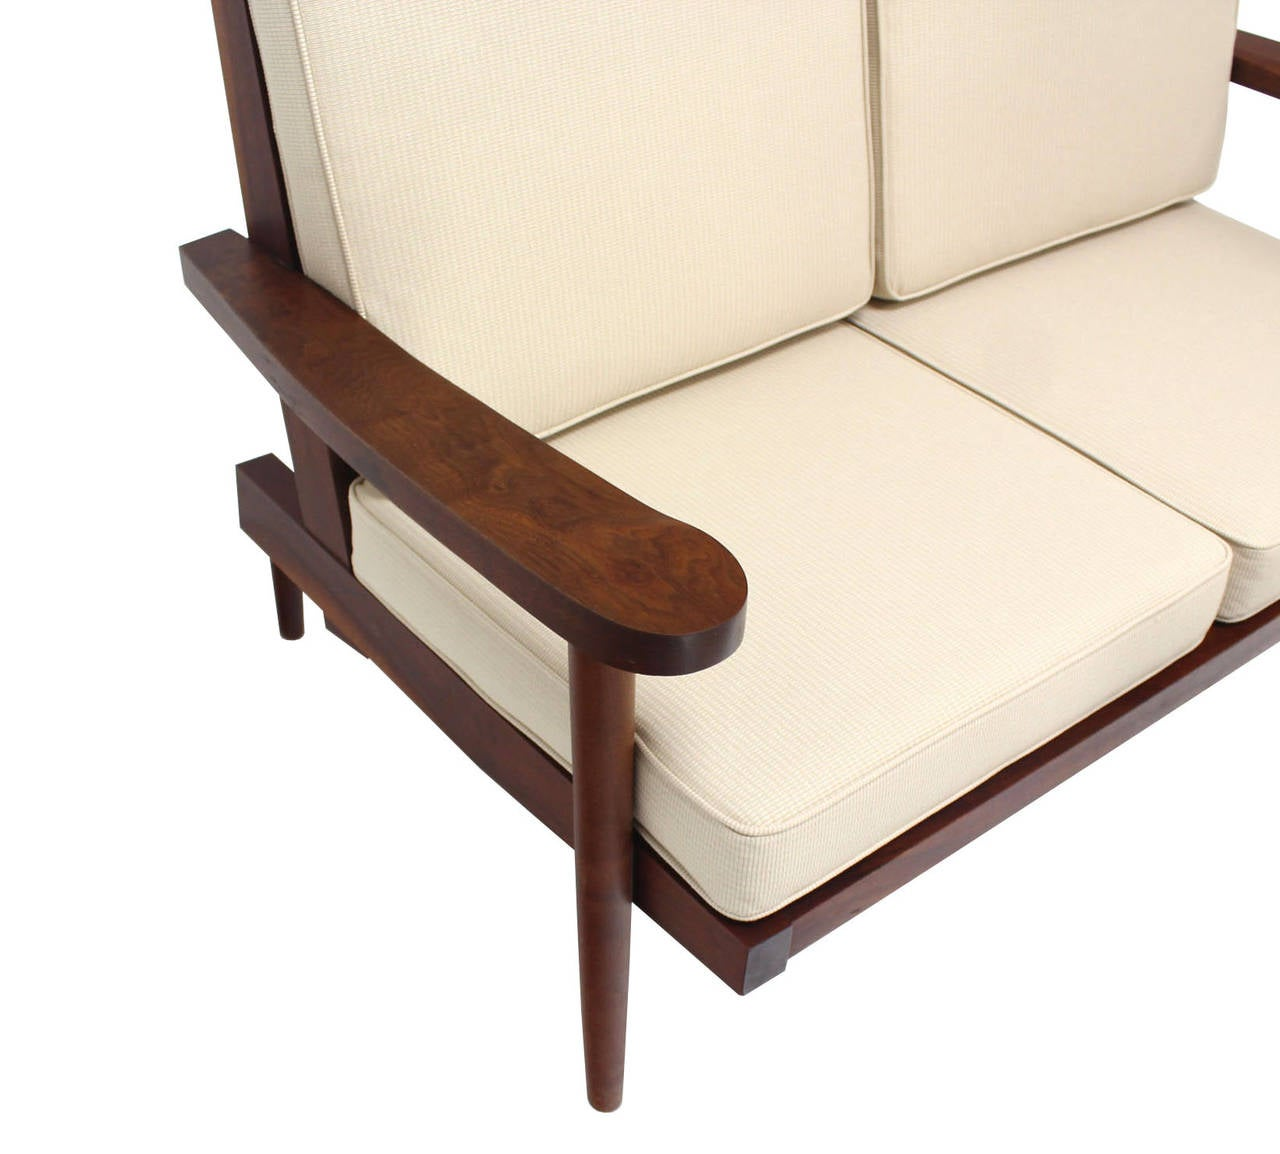 Pair of George Nakashima Style Walnut Settees with Arms New Upholstery In Excellent Condition For Sale In Blairstown, NJ